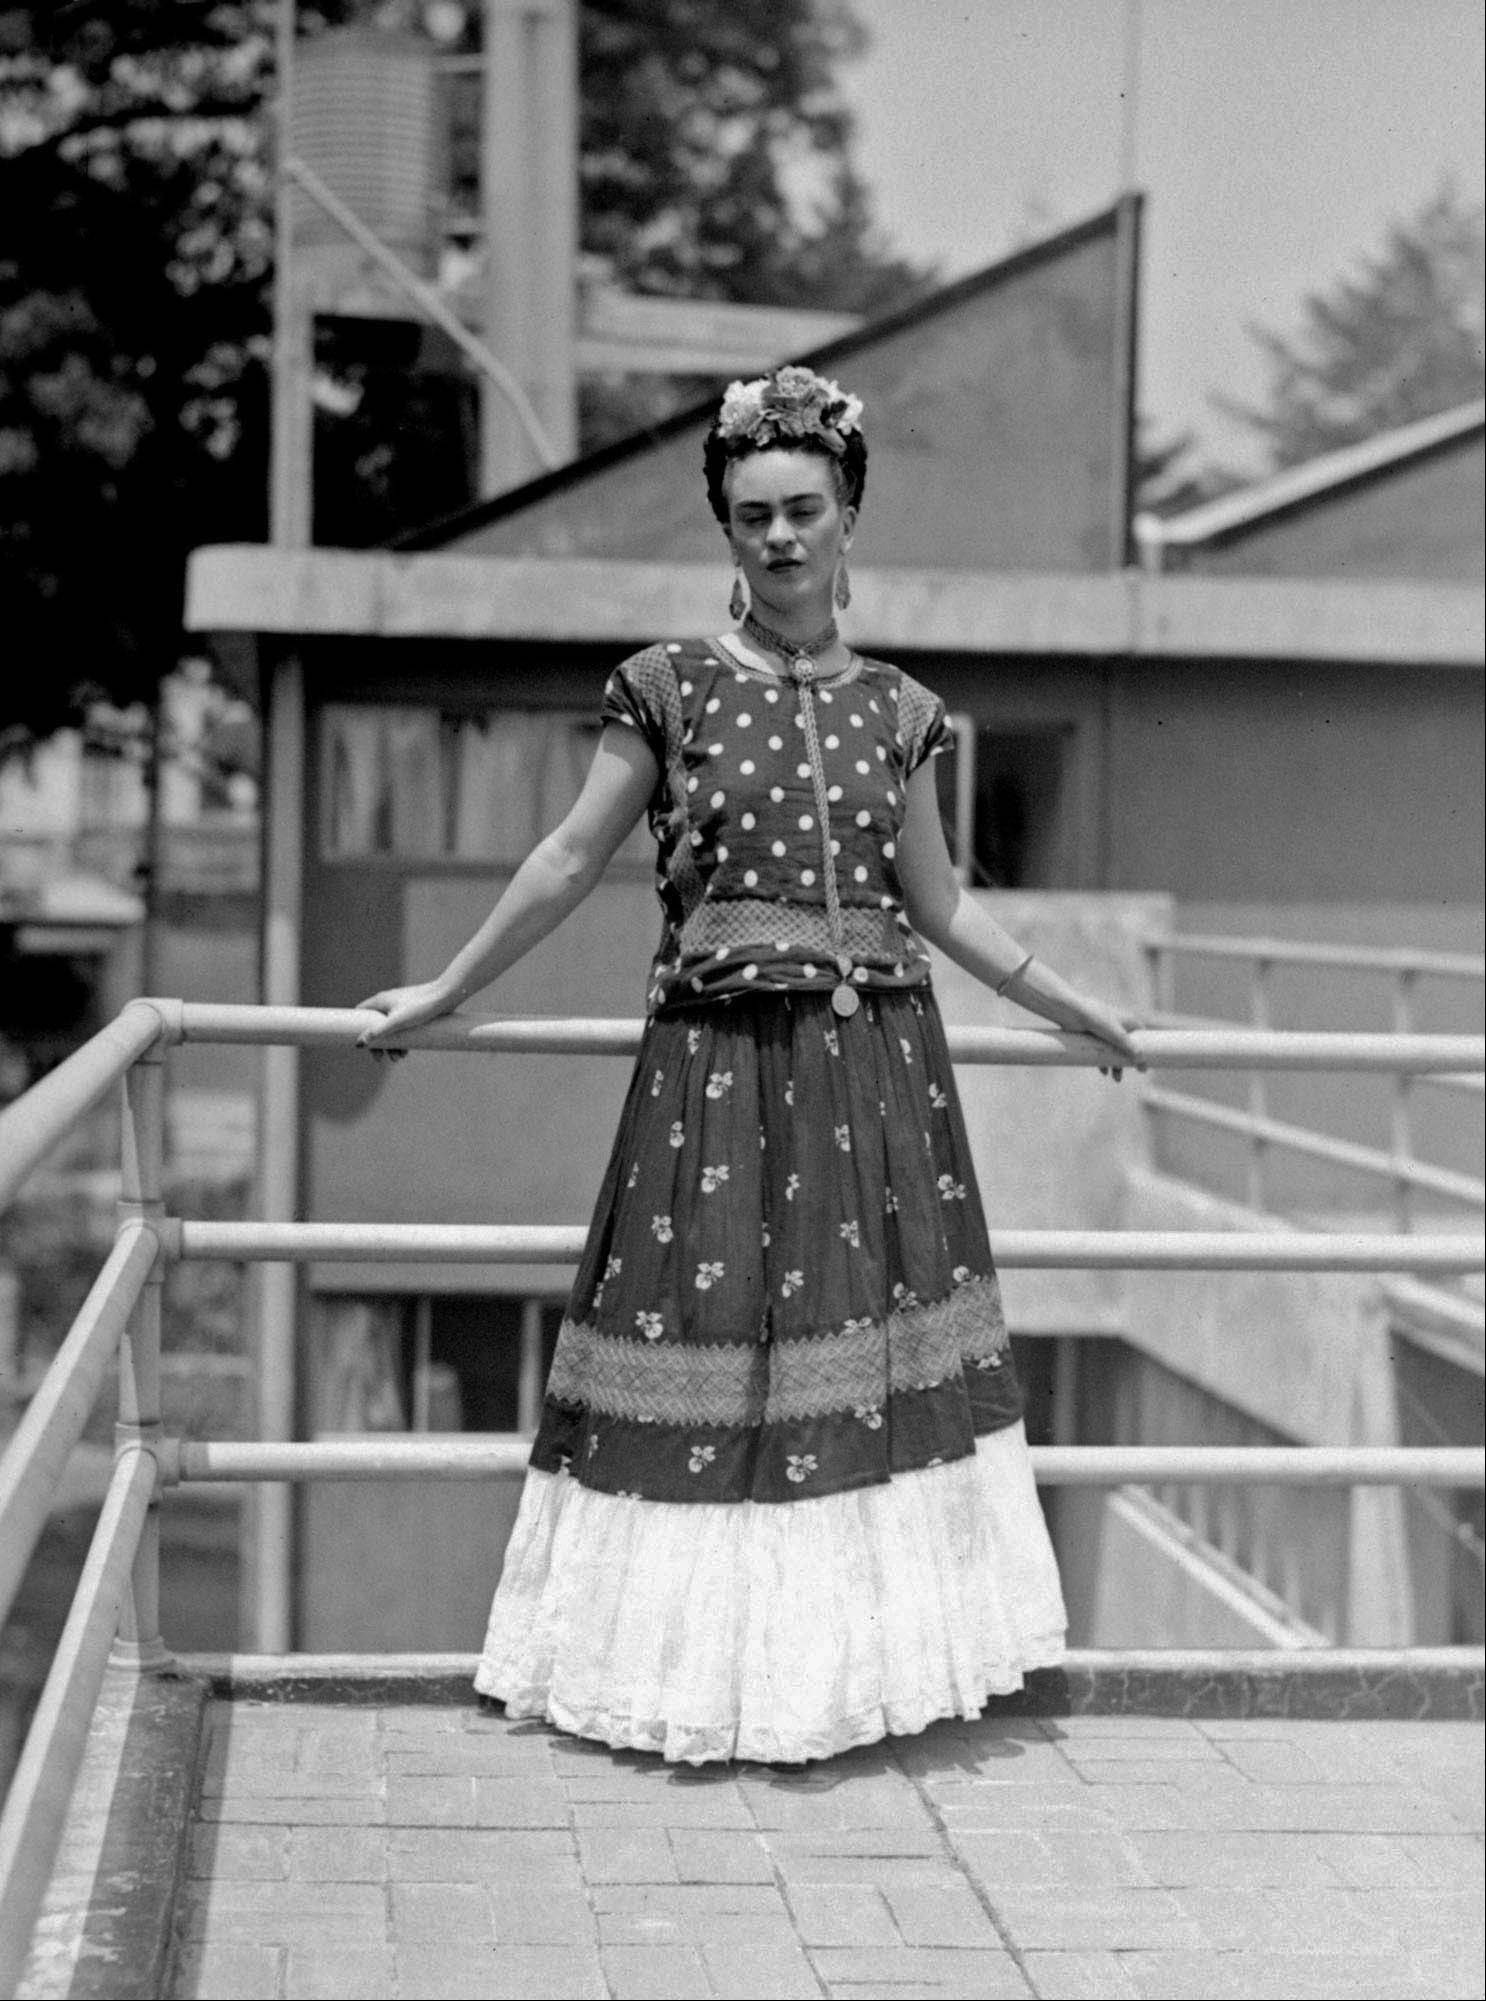 In this April 14, 1939 file photo, painter and surrealist Frida Kahlo, who was the wife of noted Mexican muralist Diego Rivera, poses at her home in Mexico City. A full collection from Kahlo�s wardrobe will go on public display Nov. 22 in Mexico City after being locked for nearly 50 years in her armoires and dressers: jewelry, shoes and clothes that still carry the scent of the late artist�s perfume and cigarette smoke or stains from painting.